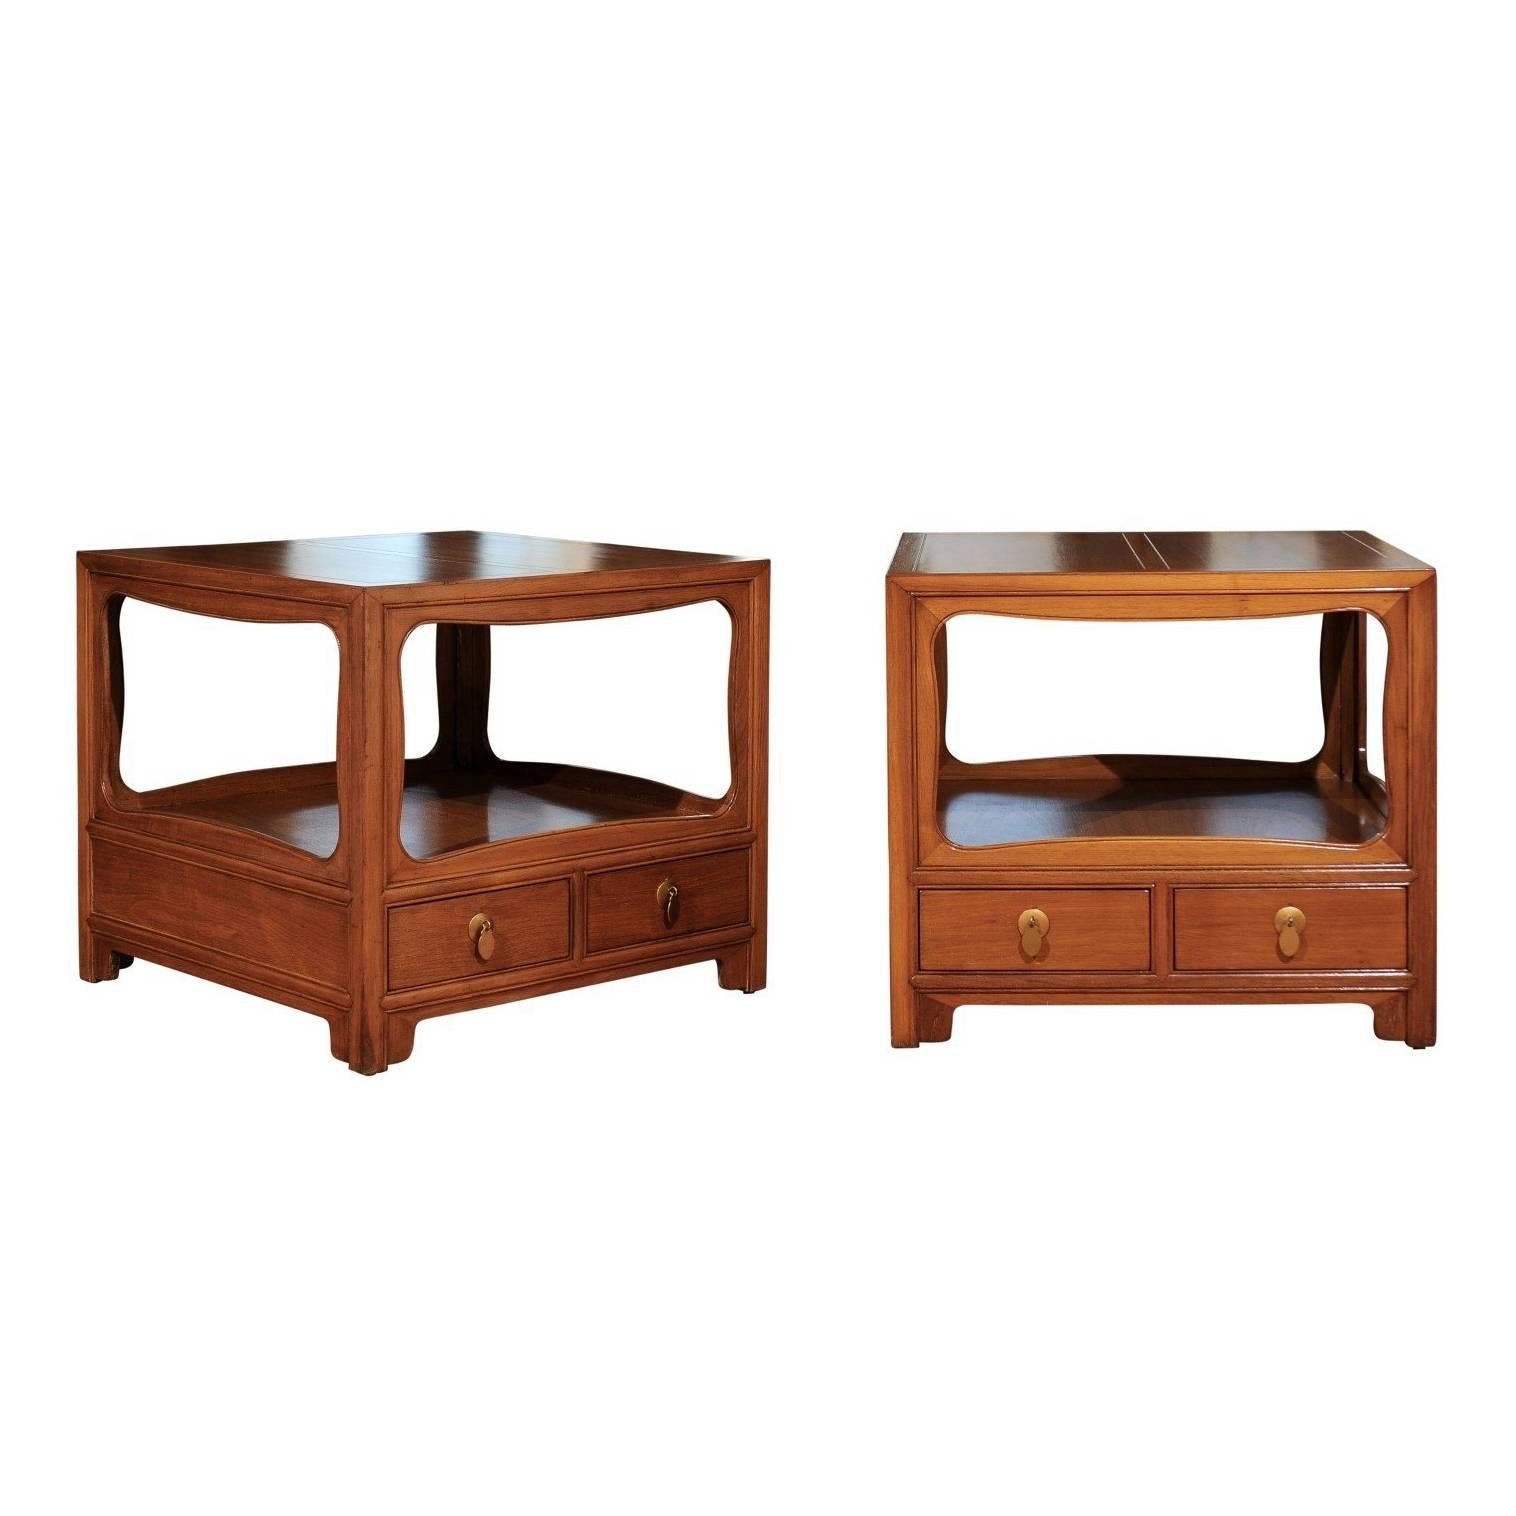 Beautiful Restored Pair of Walnut End Tables by Michael Taylor for Baker